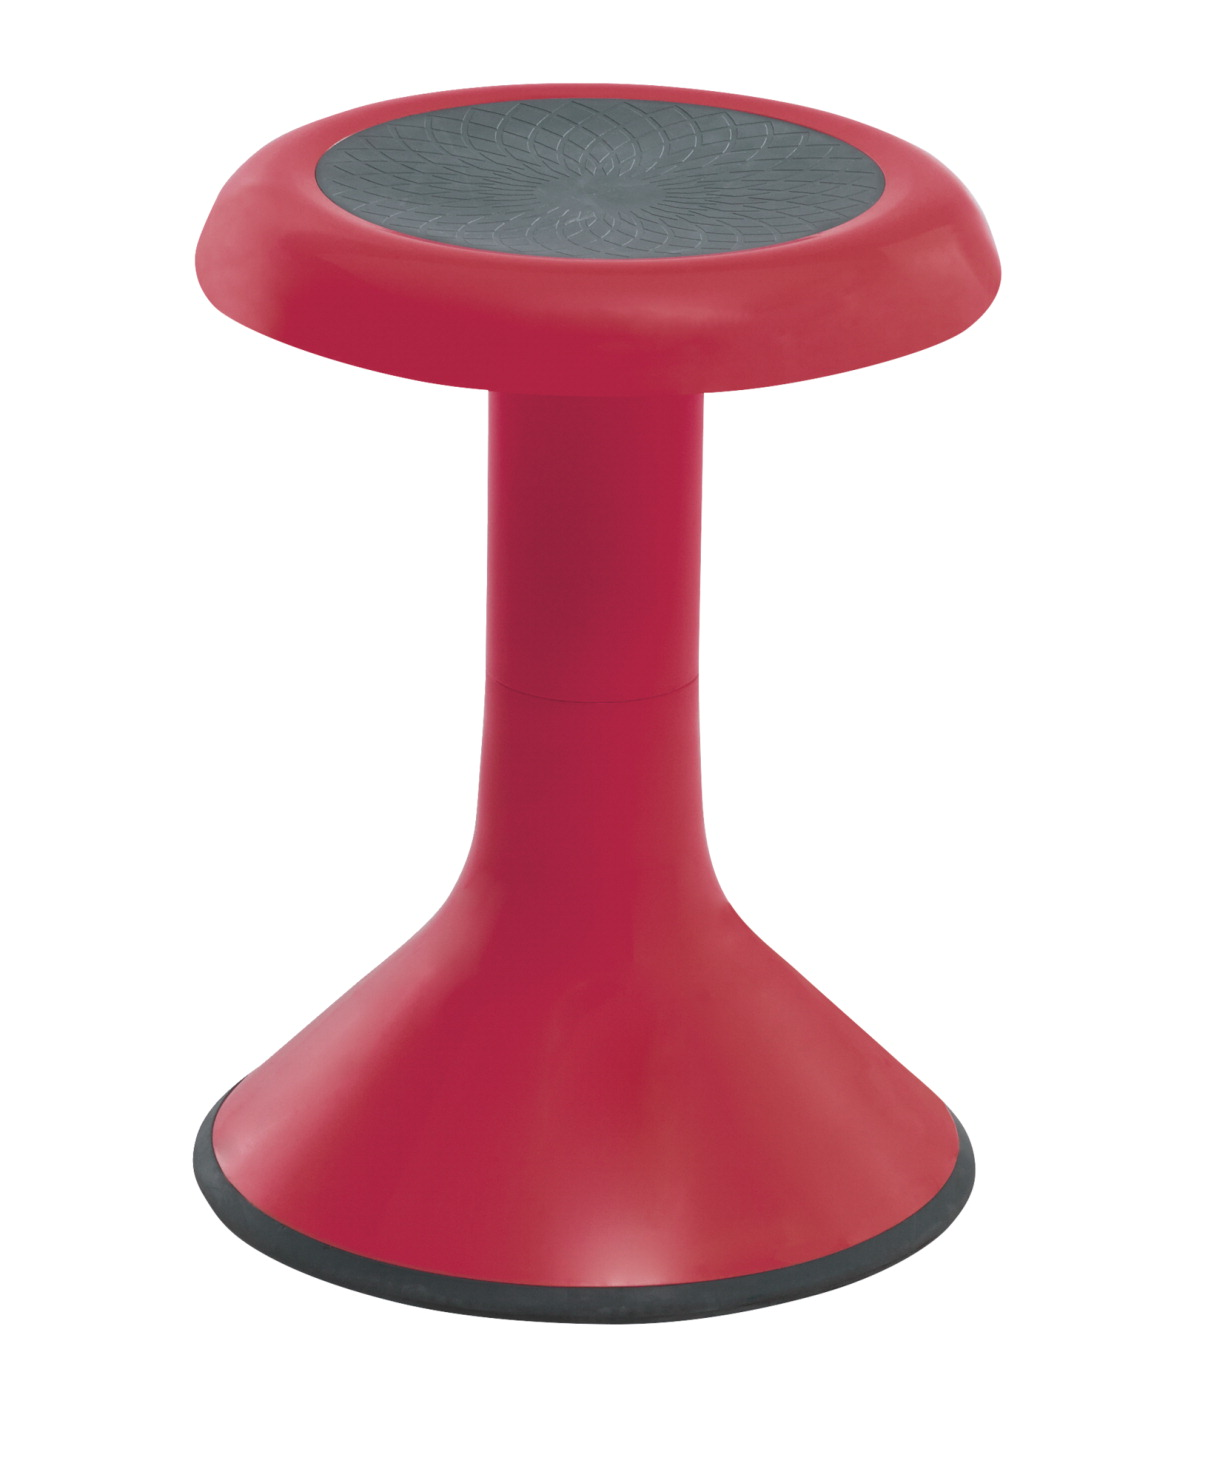 Classroom Select NeoRok Stool, Active Wobble Seating, Rubber Seat, 18-1/2 Inch Seat Height